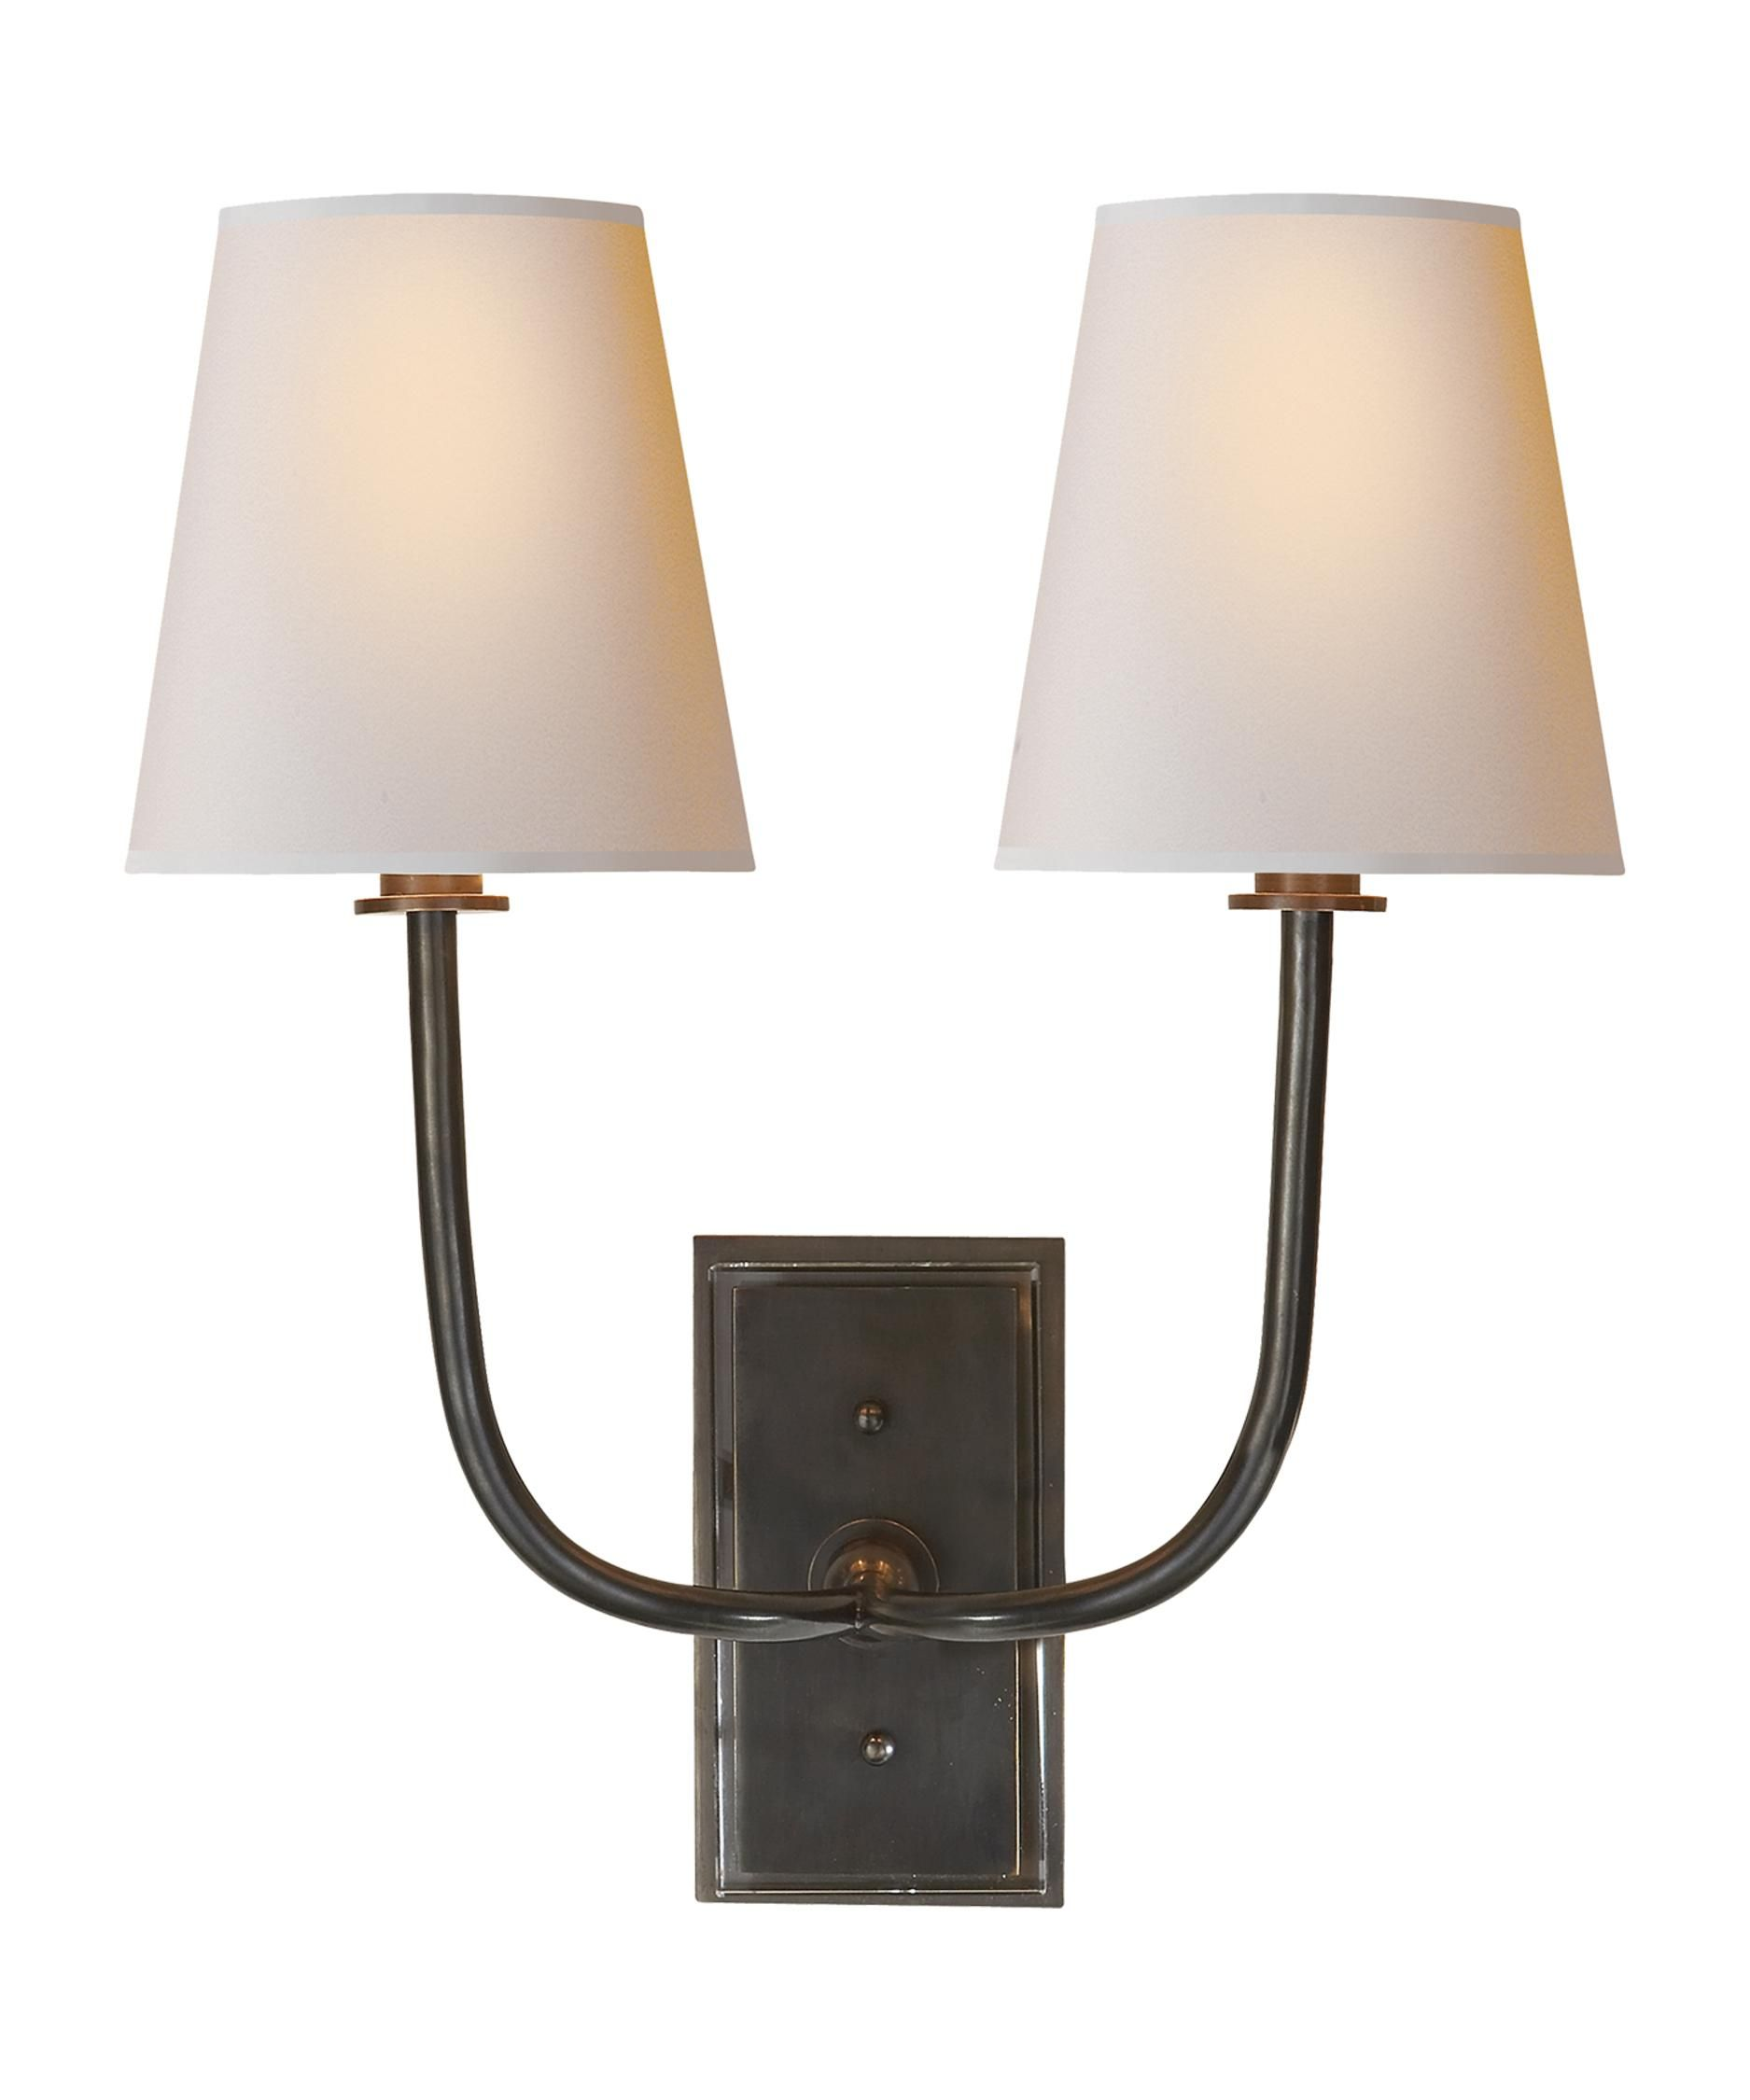 bryant liaison pendants aerin lamp kelly tripod pendant floor sconce york and goodman swing new quatrefoil visual arm awesome circa medium globe wearstler kitchen comfort sconces lighting